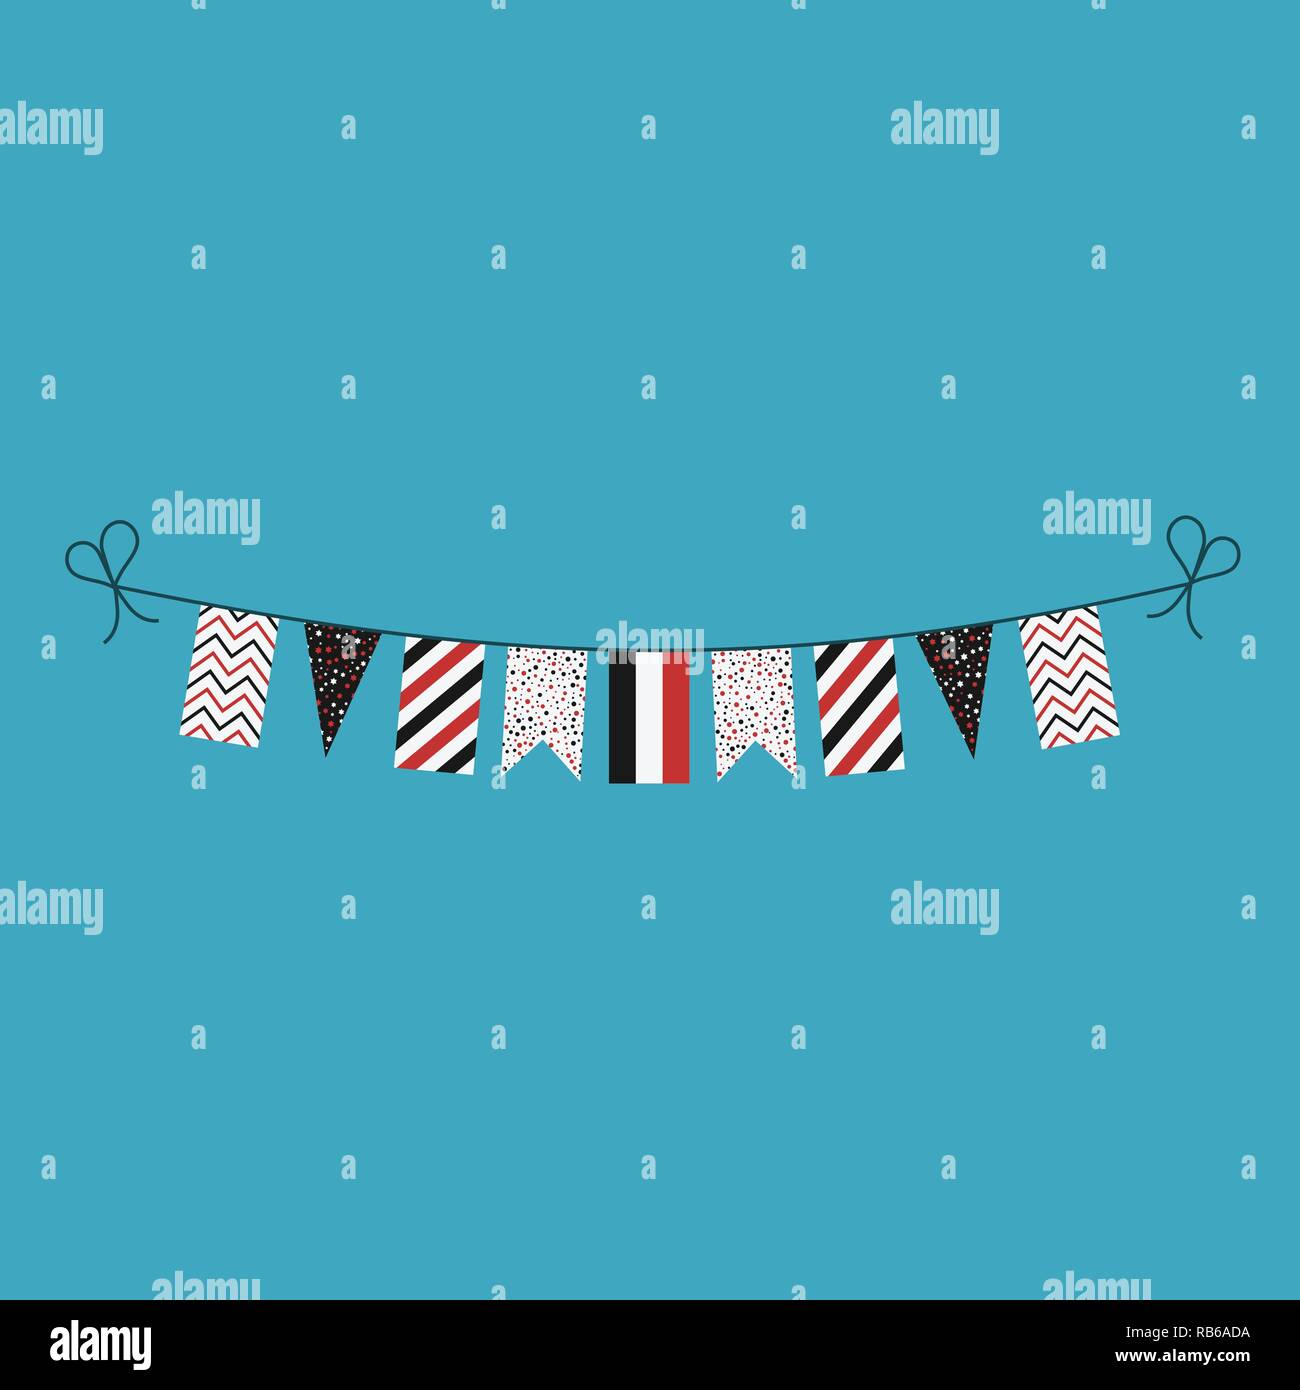 Decorations bunting flags for Yemen national day holiday in flat design. Independence day or National day holiday concept. - Stock Vector